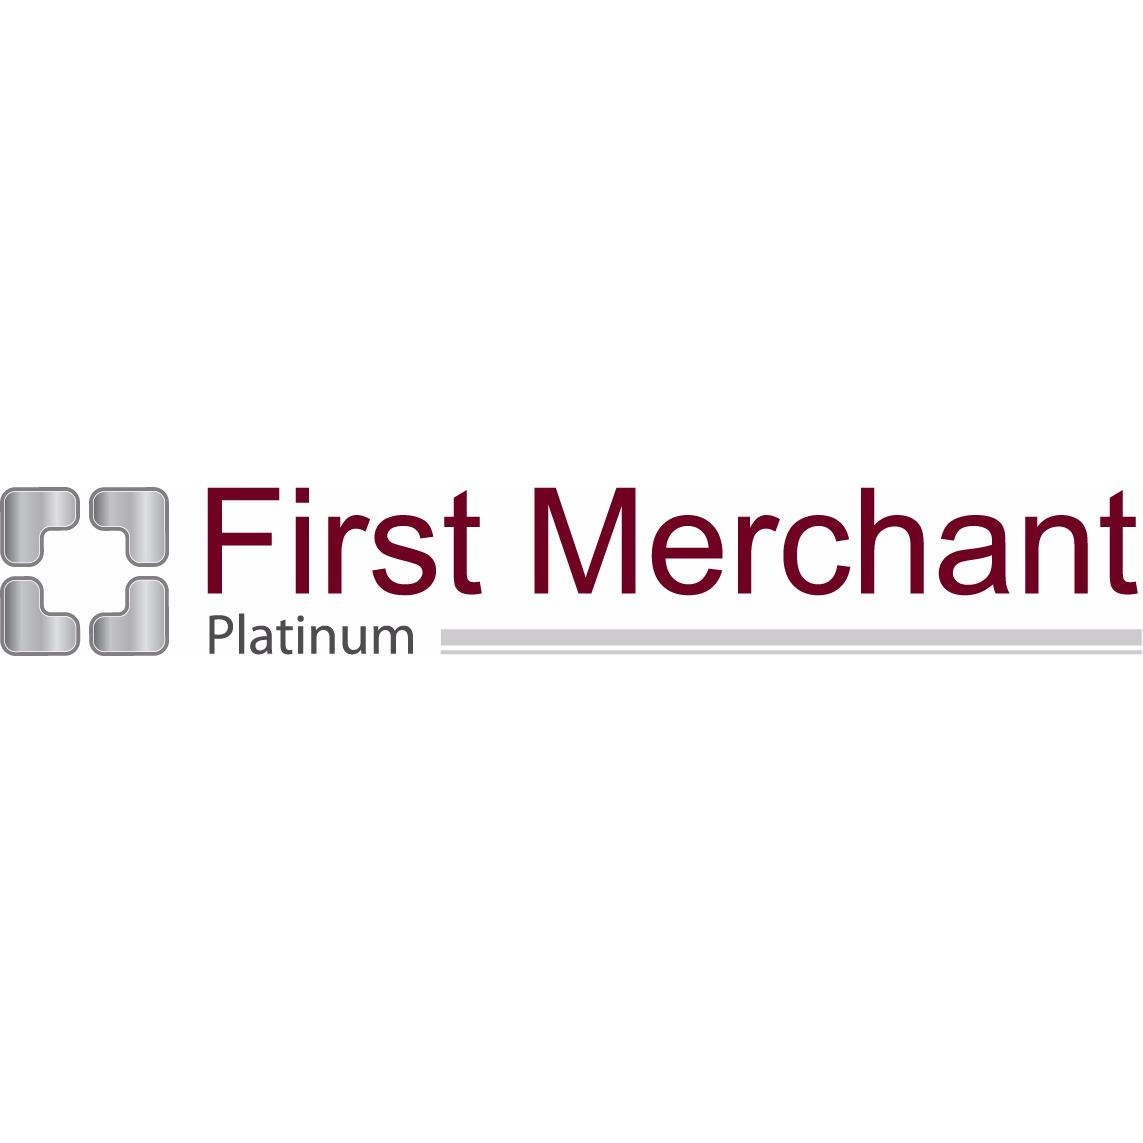 First Merchant Platinum, Inc